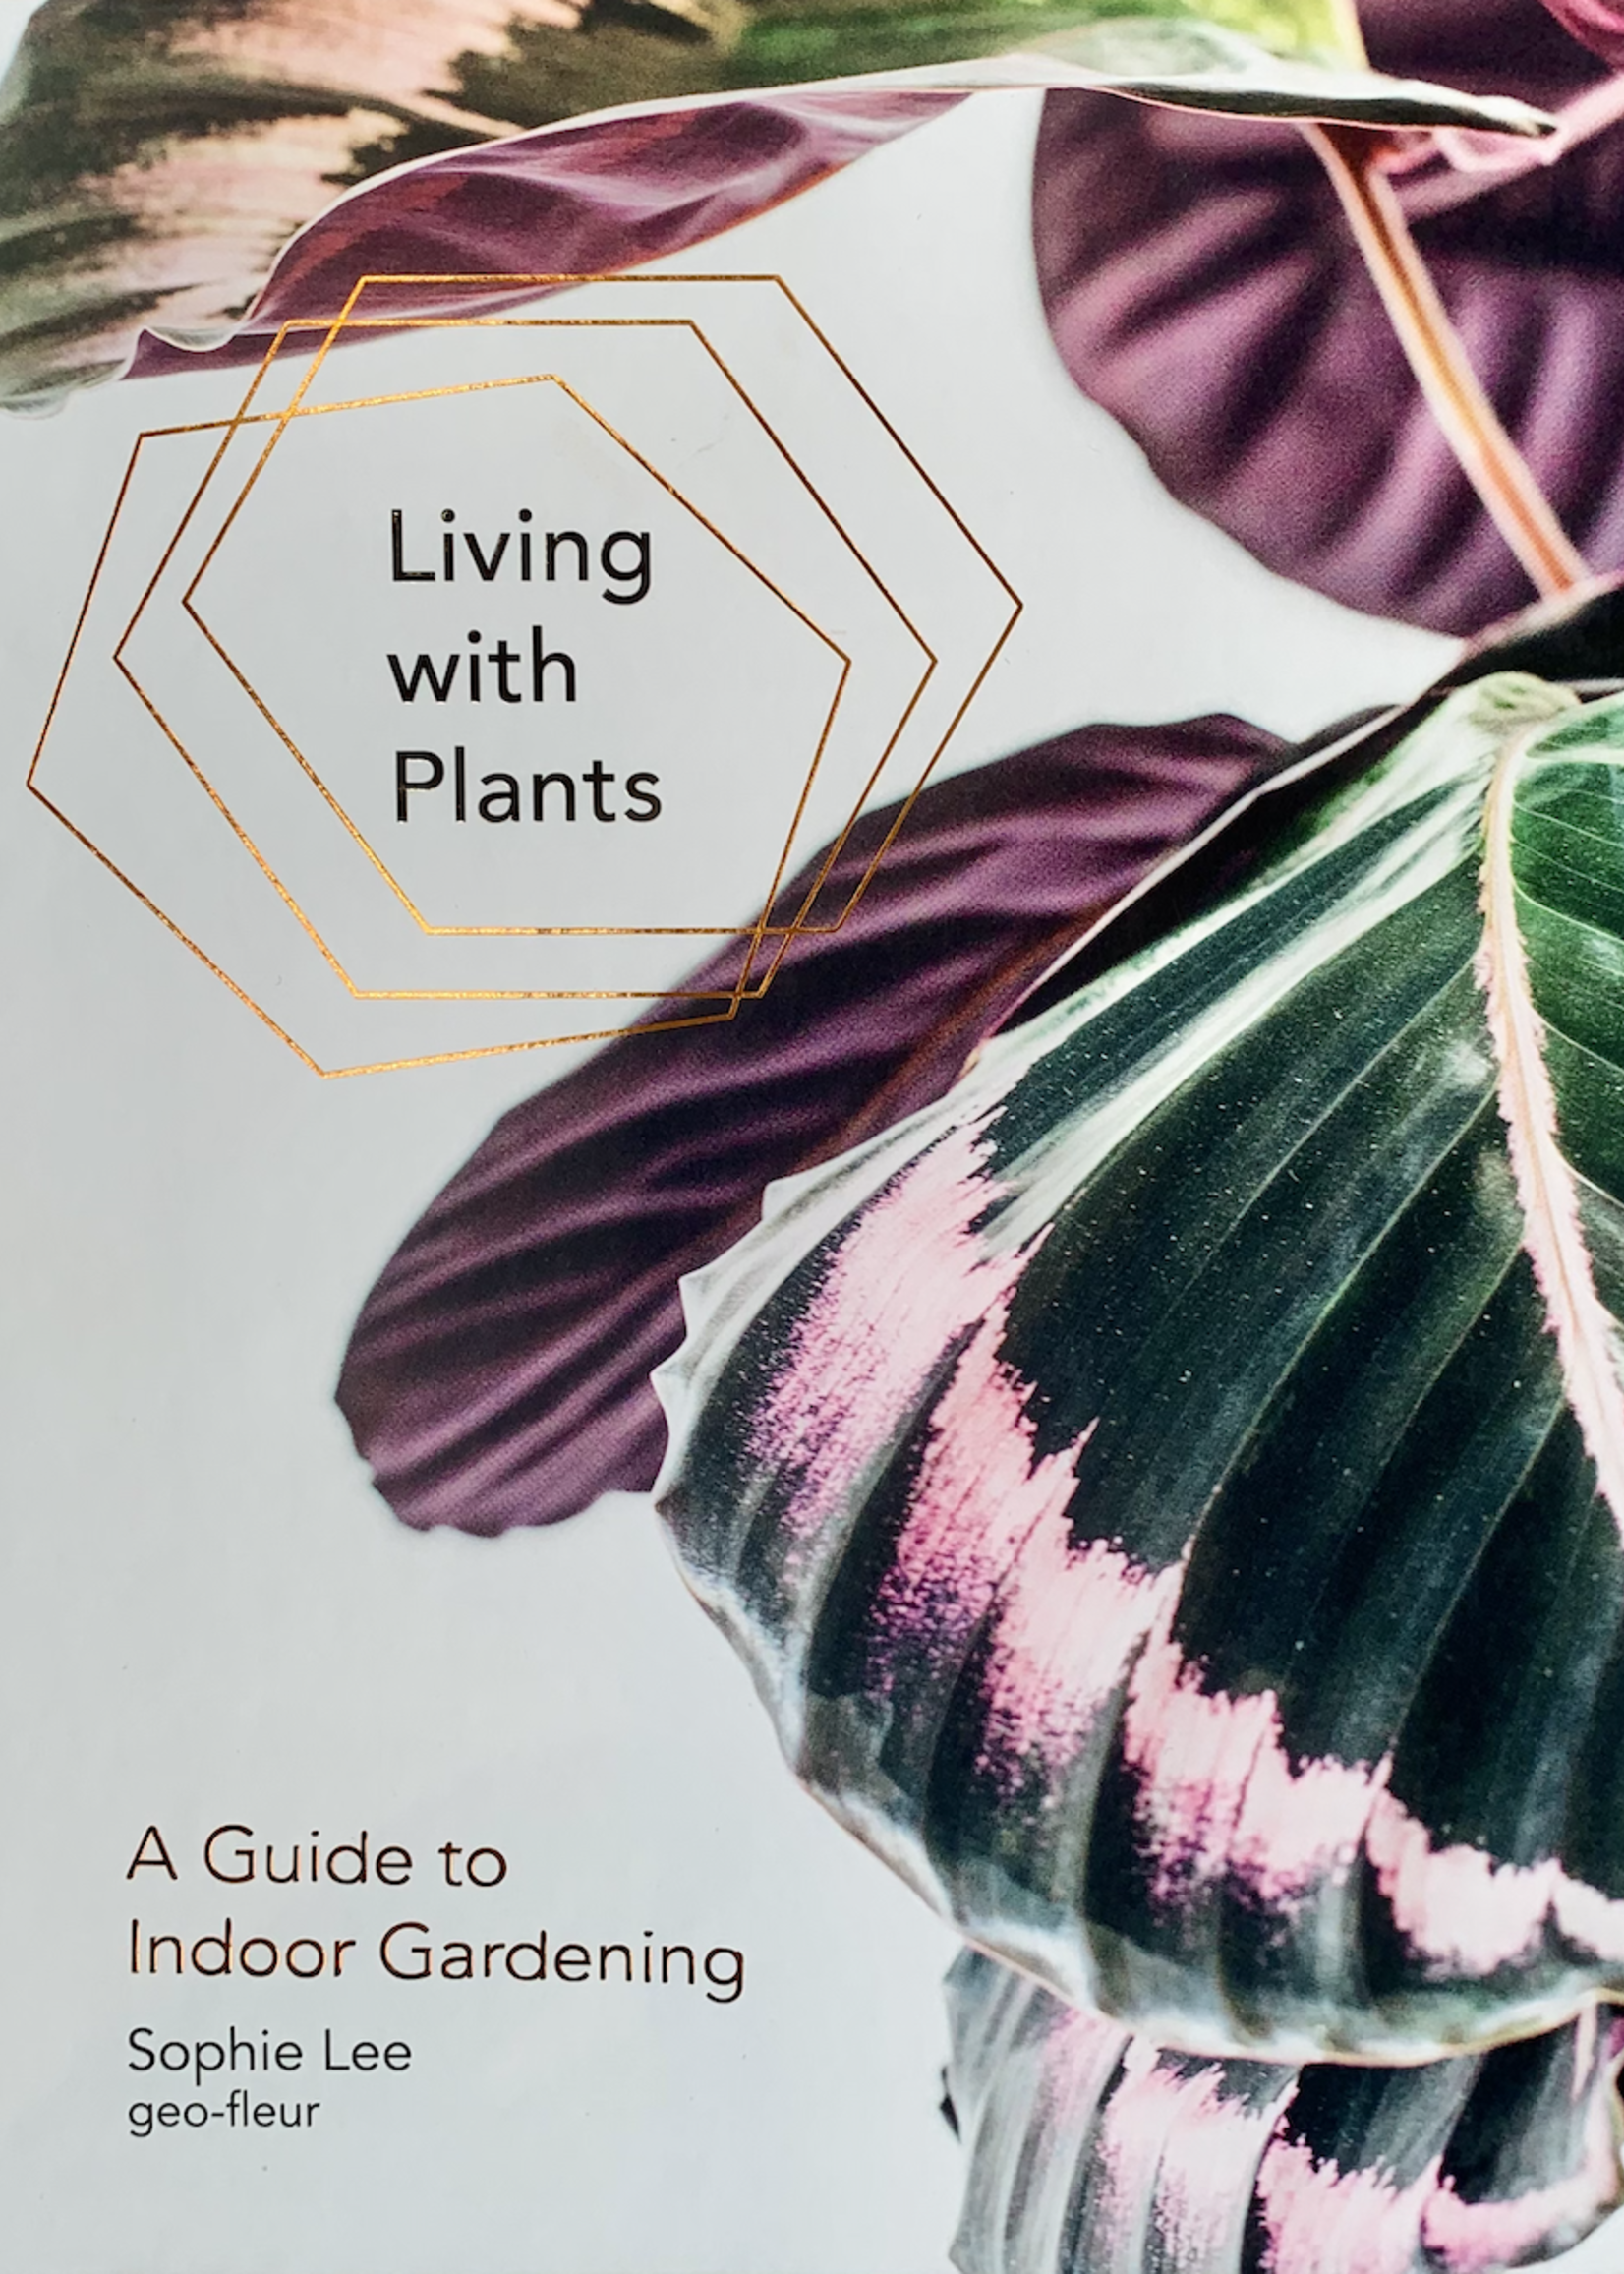 hachette book group hachette living with plants book